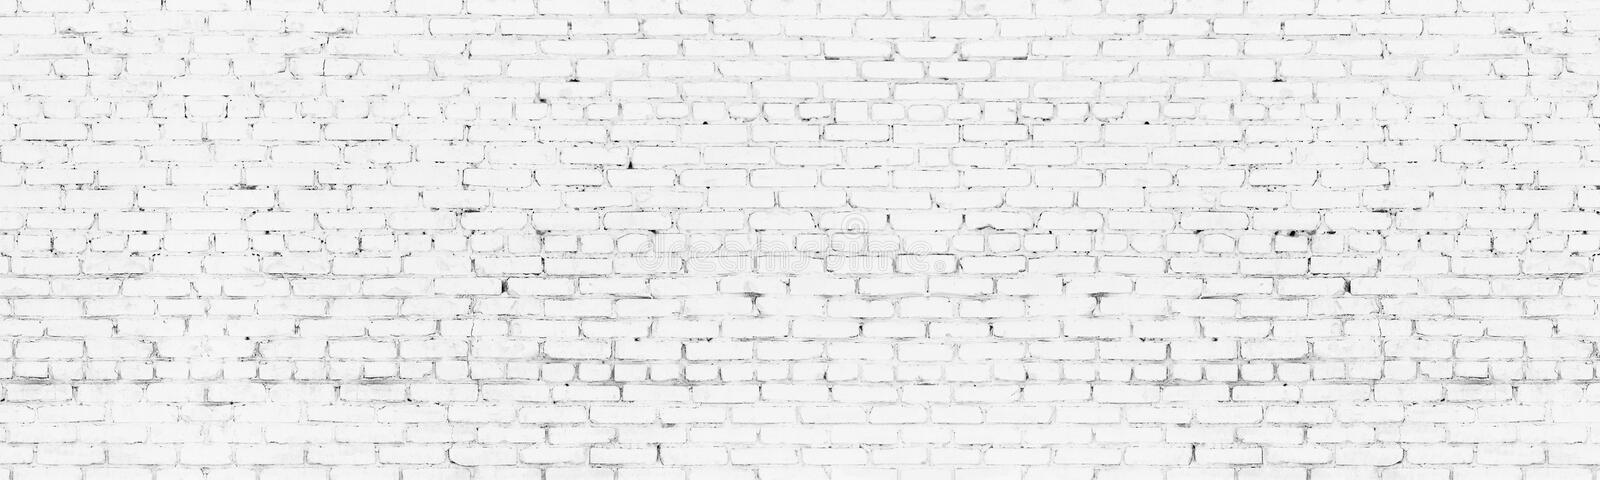 Whitewashed old brick wall wide background. White brickwork panoramic backdrop. Whitewashed old brick wall wide background. White washed brickwork panoramic royalty free illustration